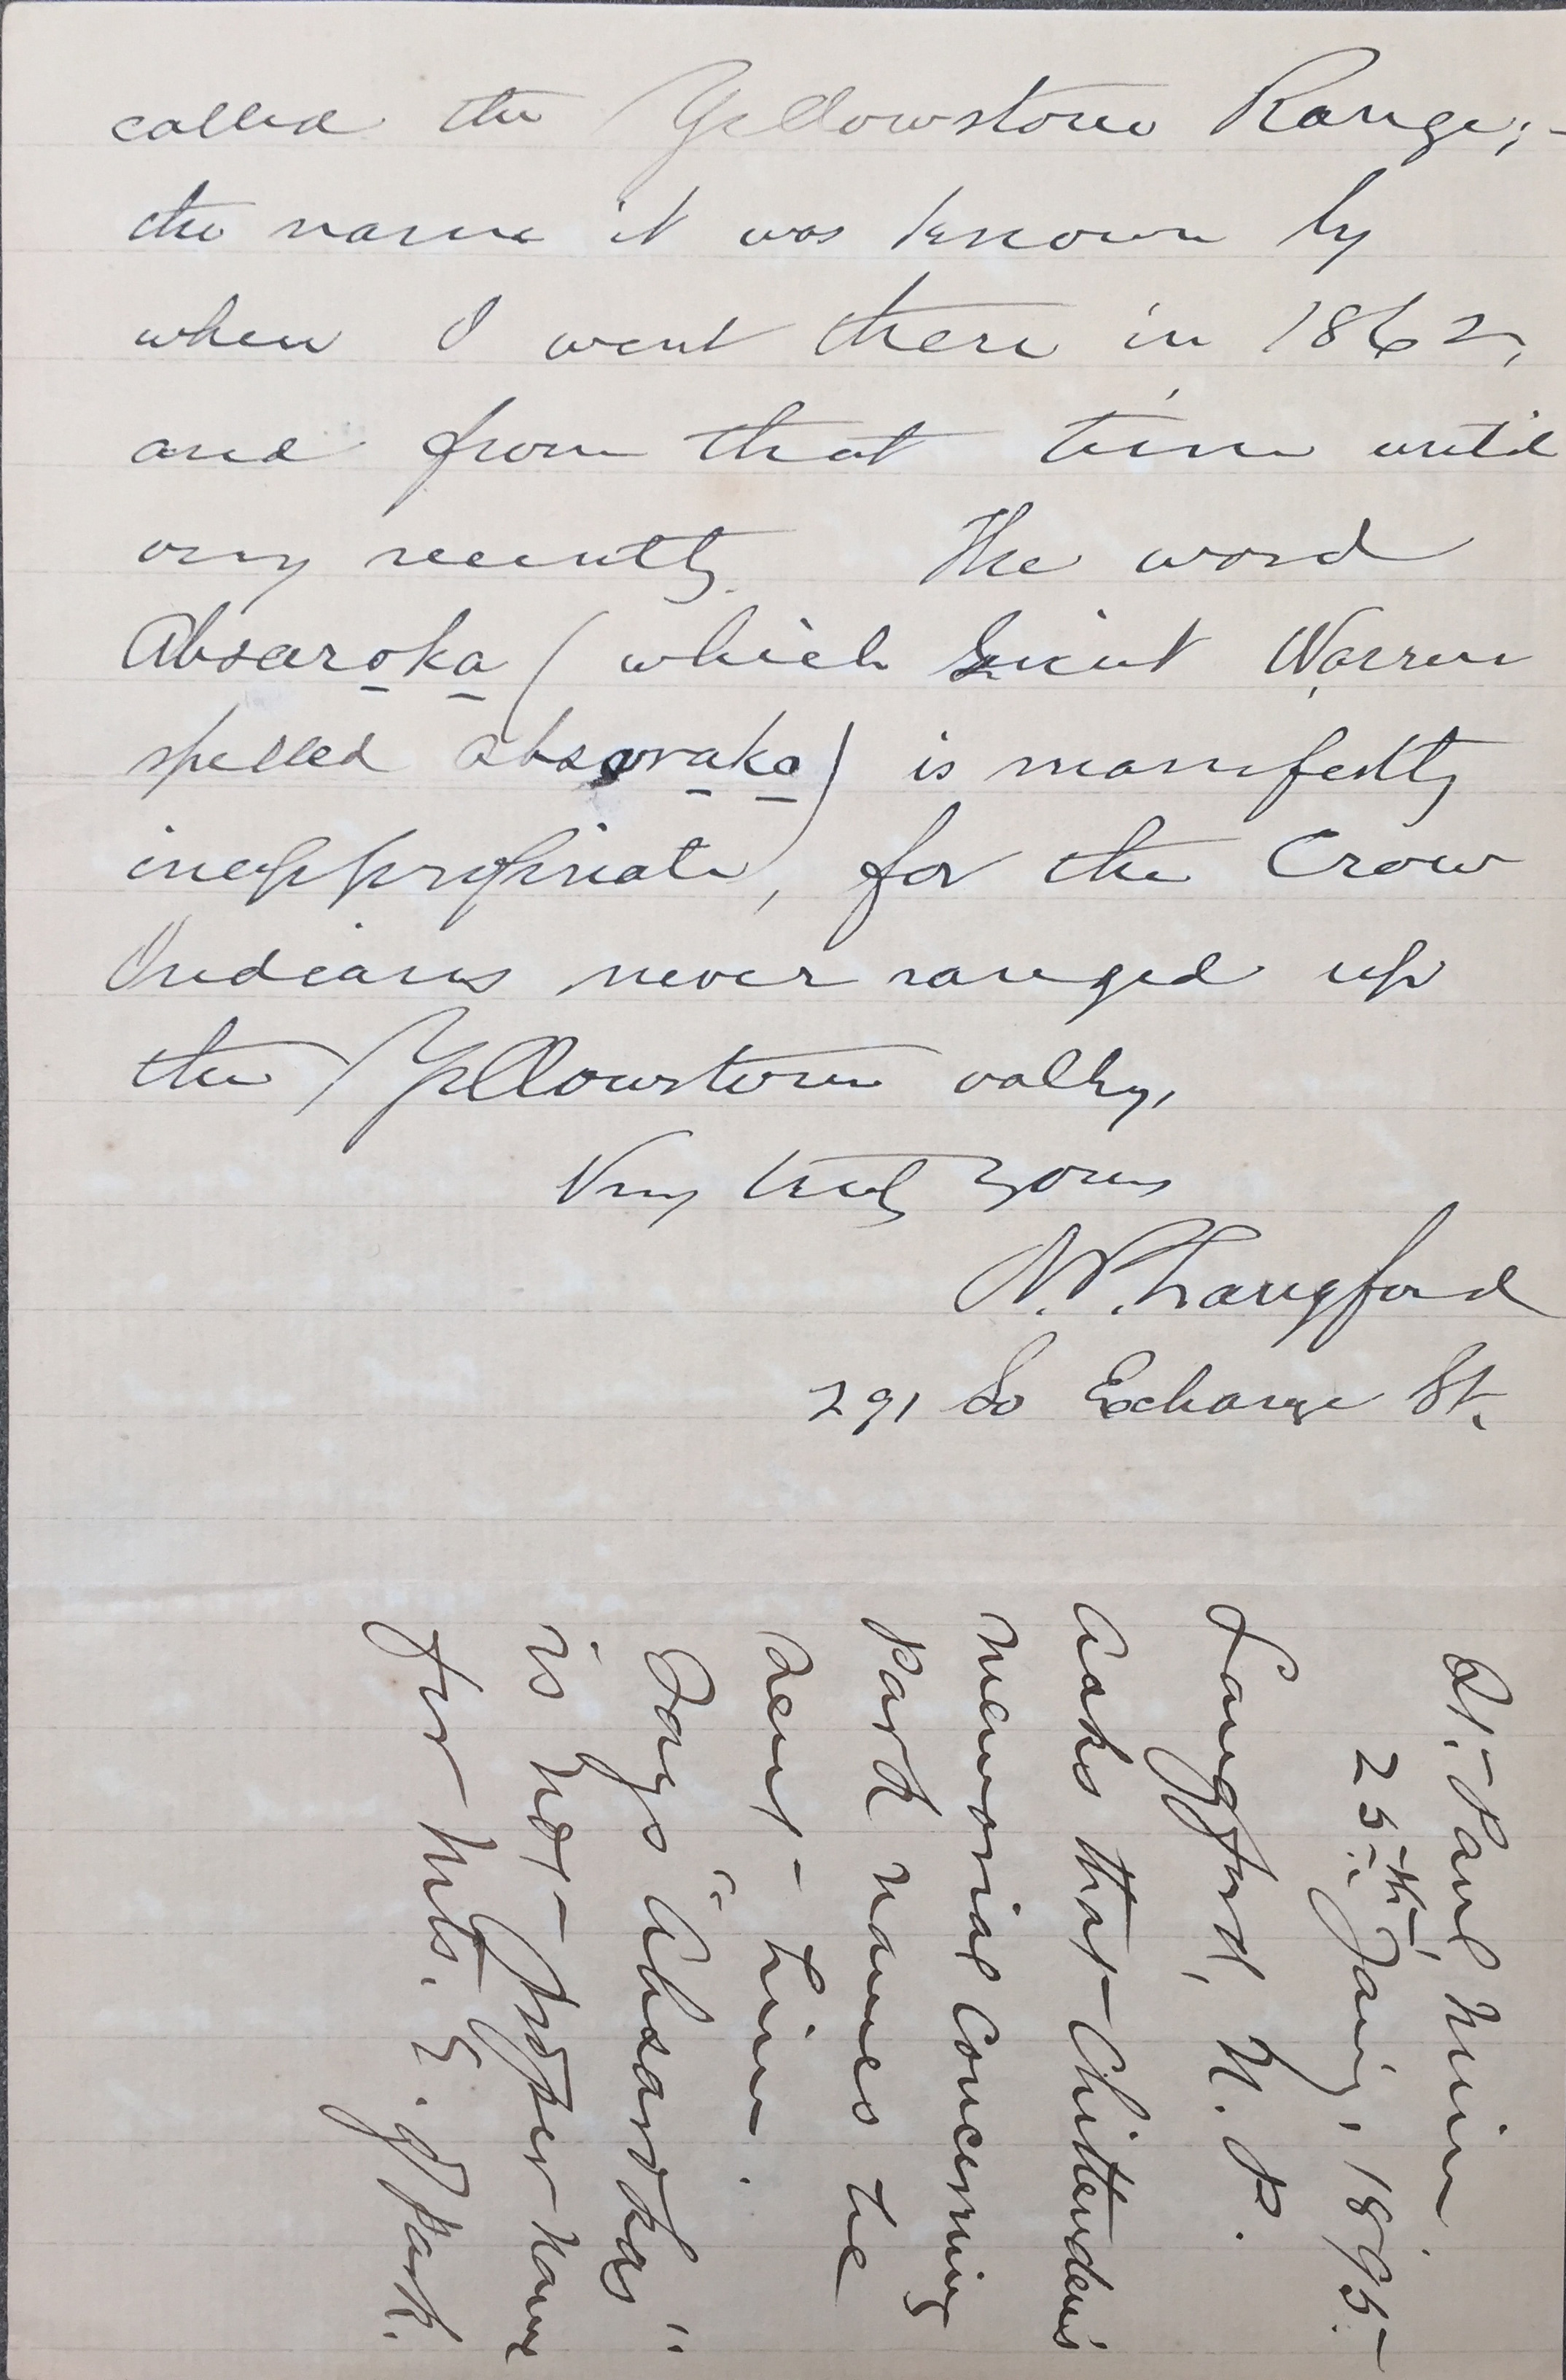 January 25, 1895 Letter written by Langford to Acting Army Superintendent George Anderson, concerning Chittenden and the naming of the mountains on the east side of the park